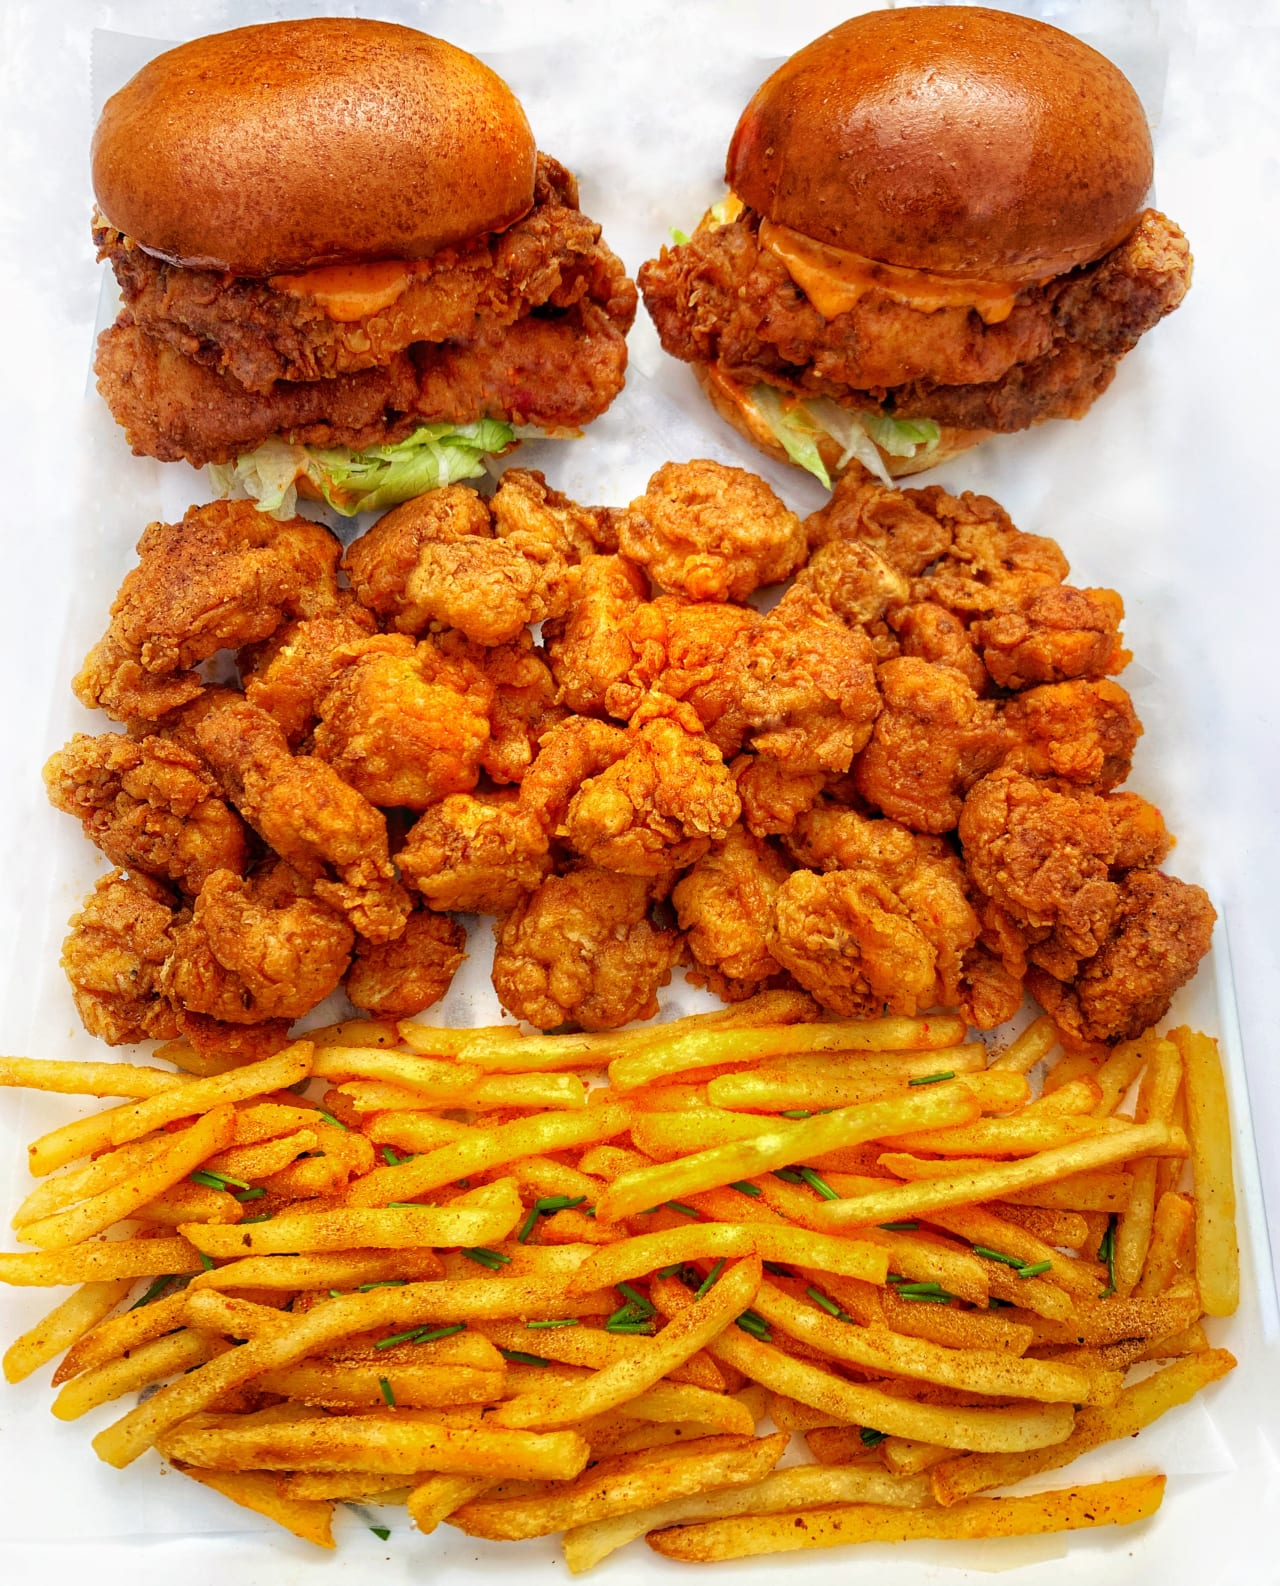 Popcorn Chicken and Spicy chicken burgers